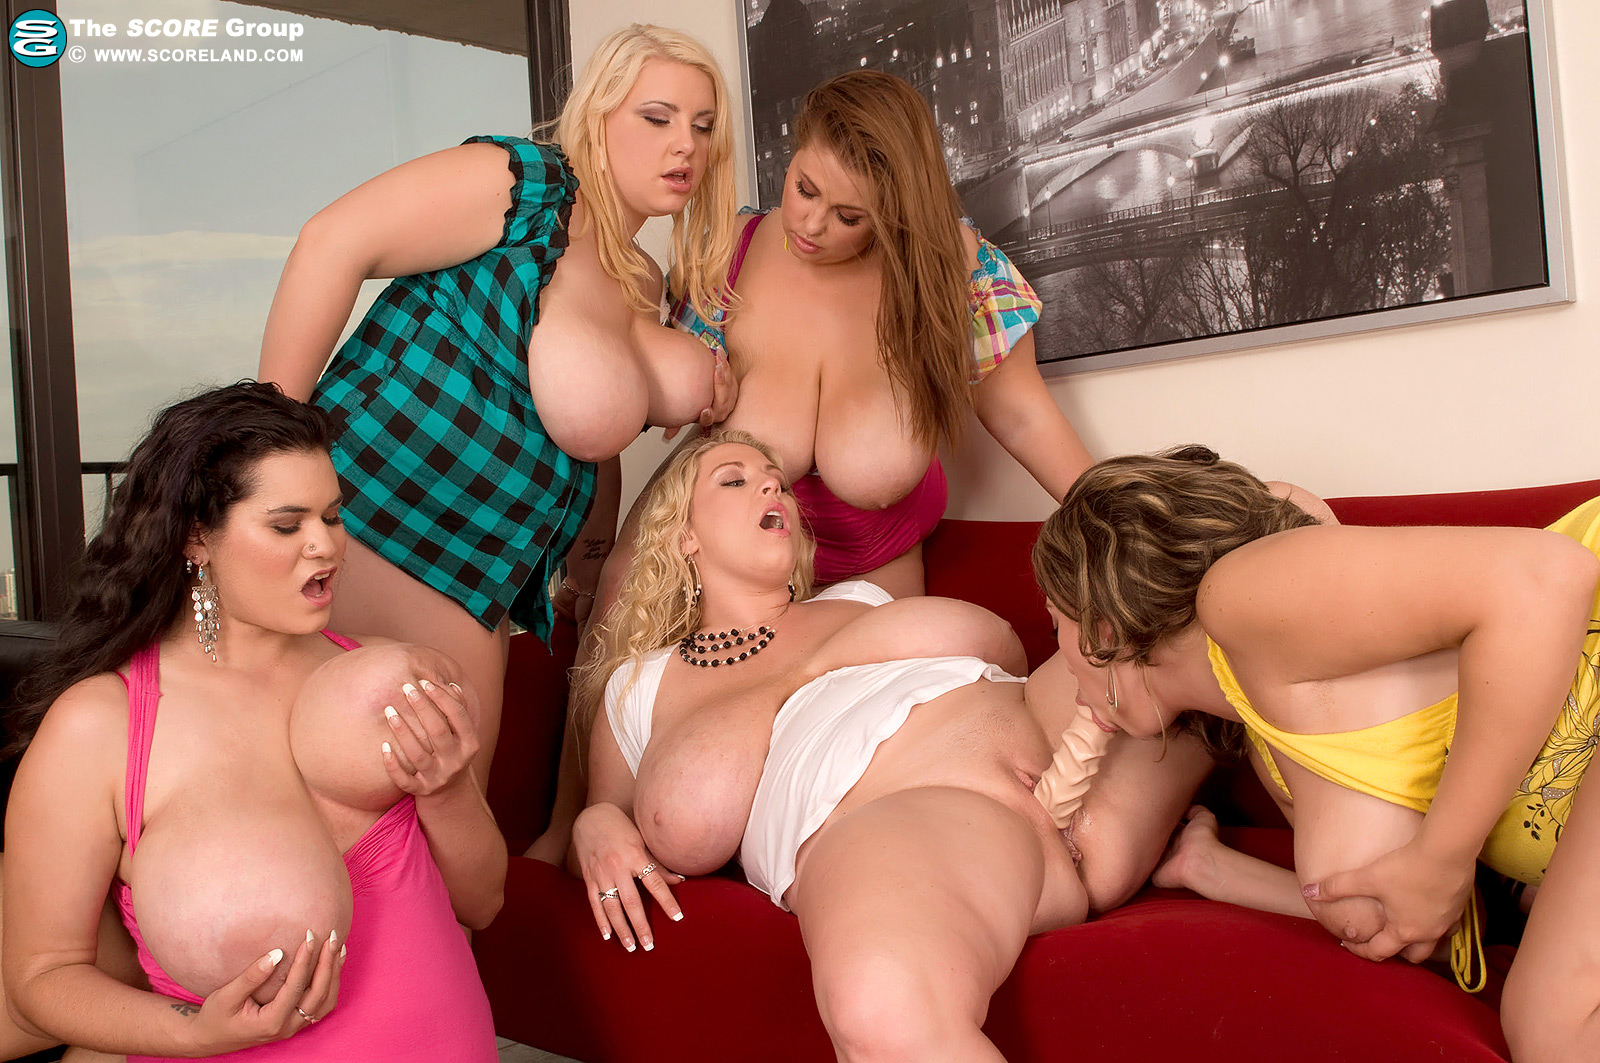 Big tit mature blonde group sex — 3